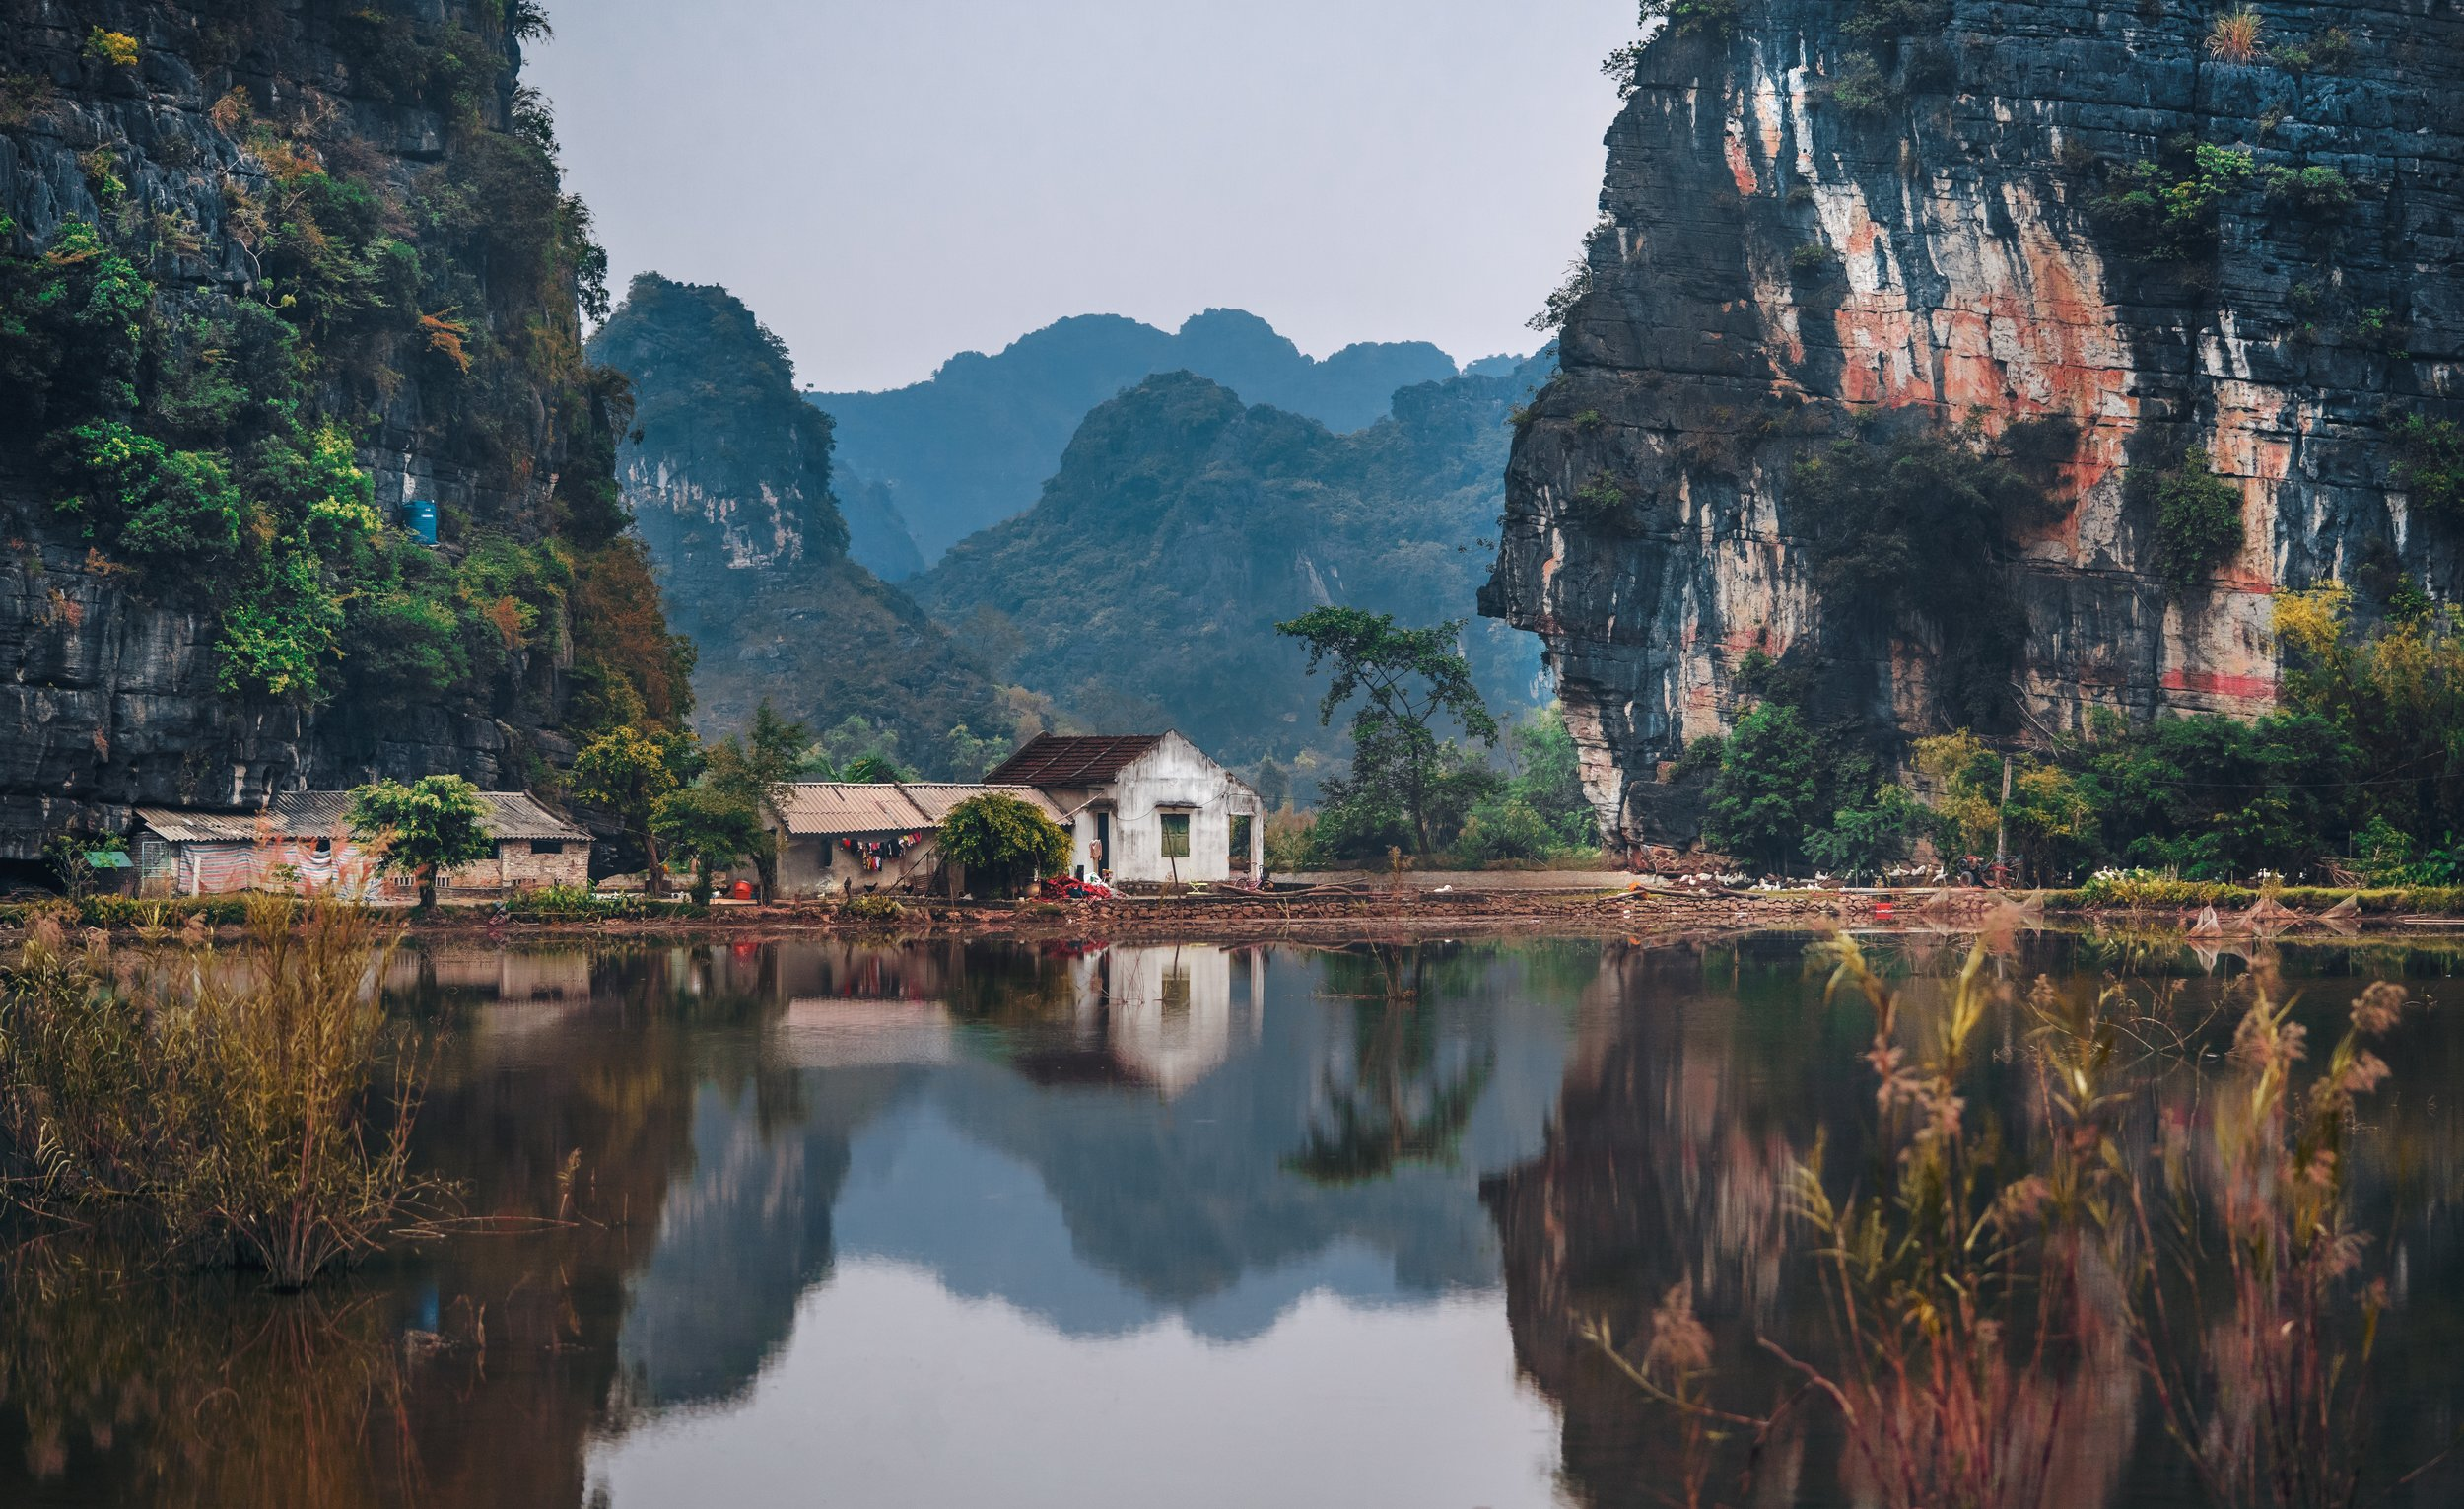 Imagine living here with these breathtaking surroundings in Ninh Bình, Vietnam. This was taken by  Ruslan Bardash  with a  Sony ILCE-7RM2 .